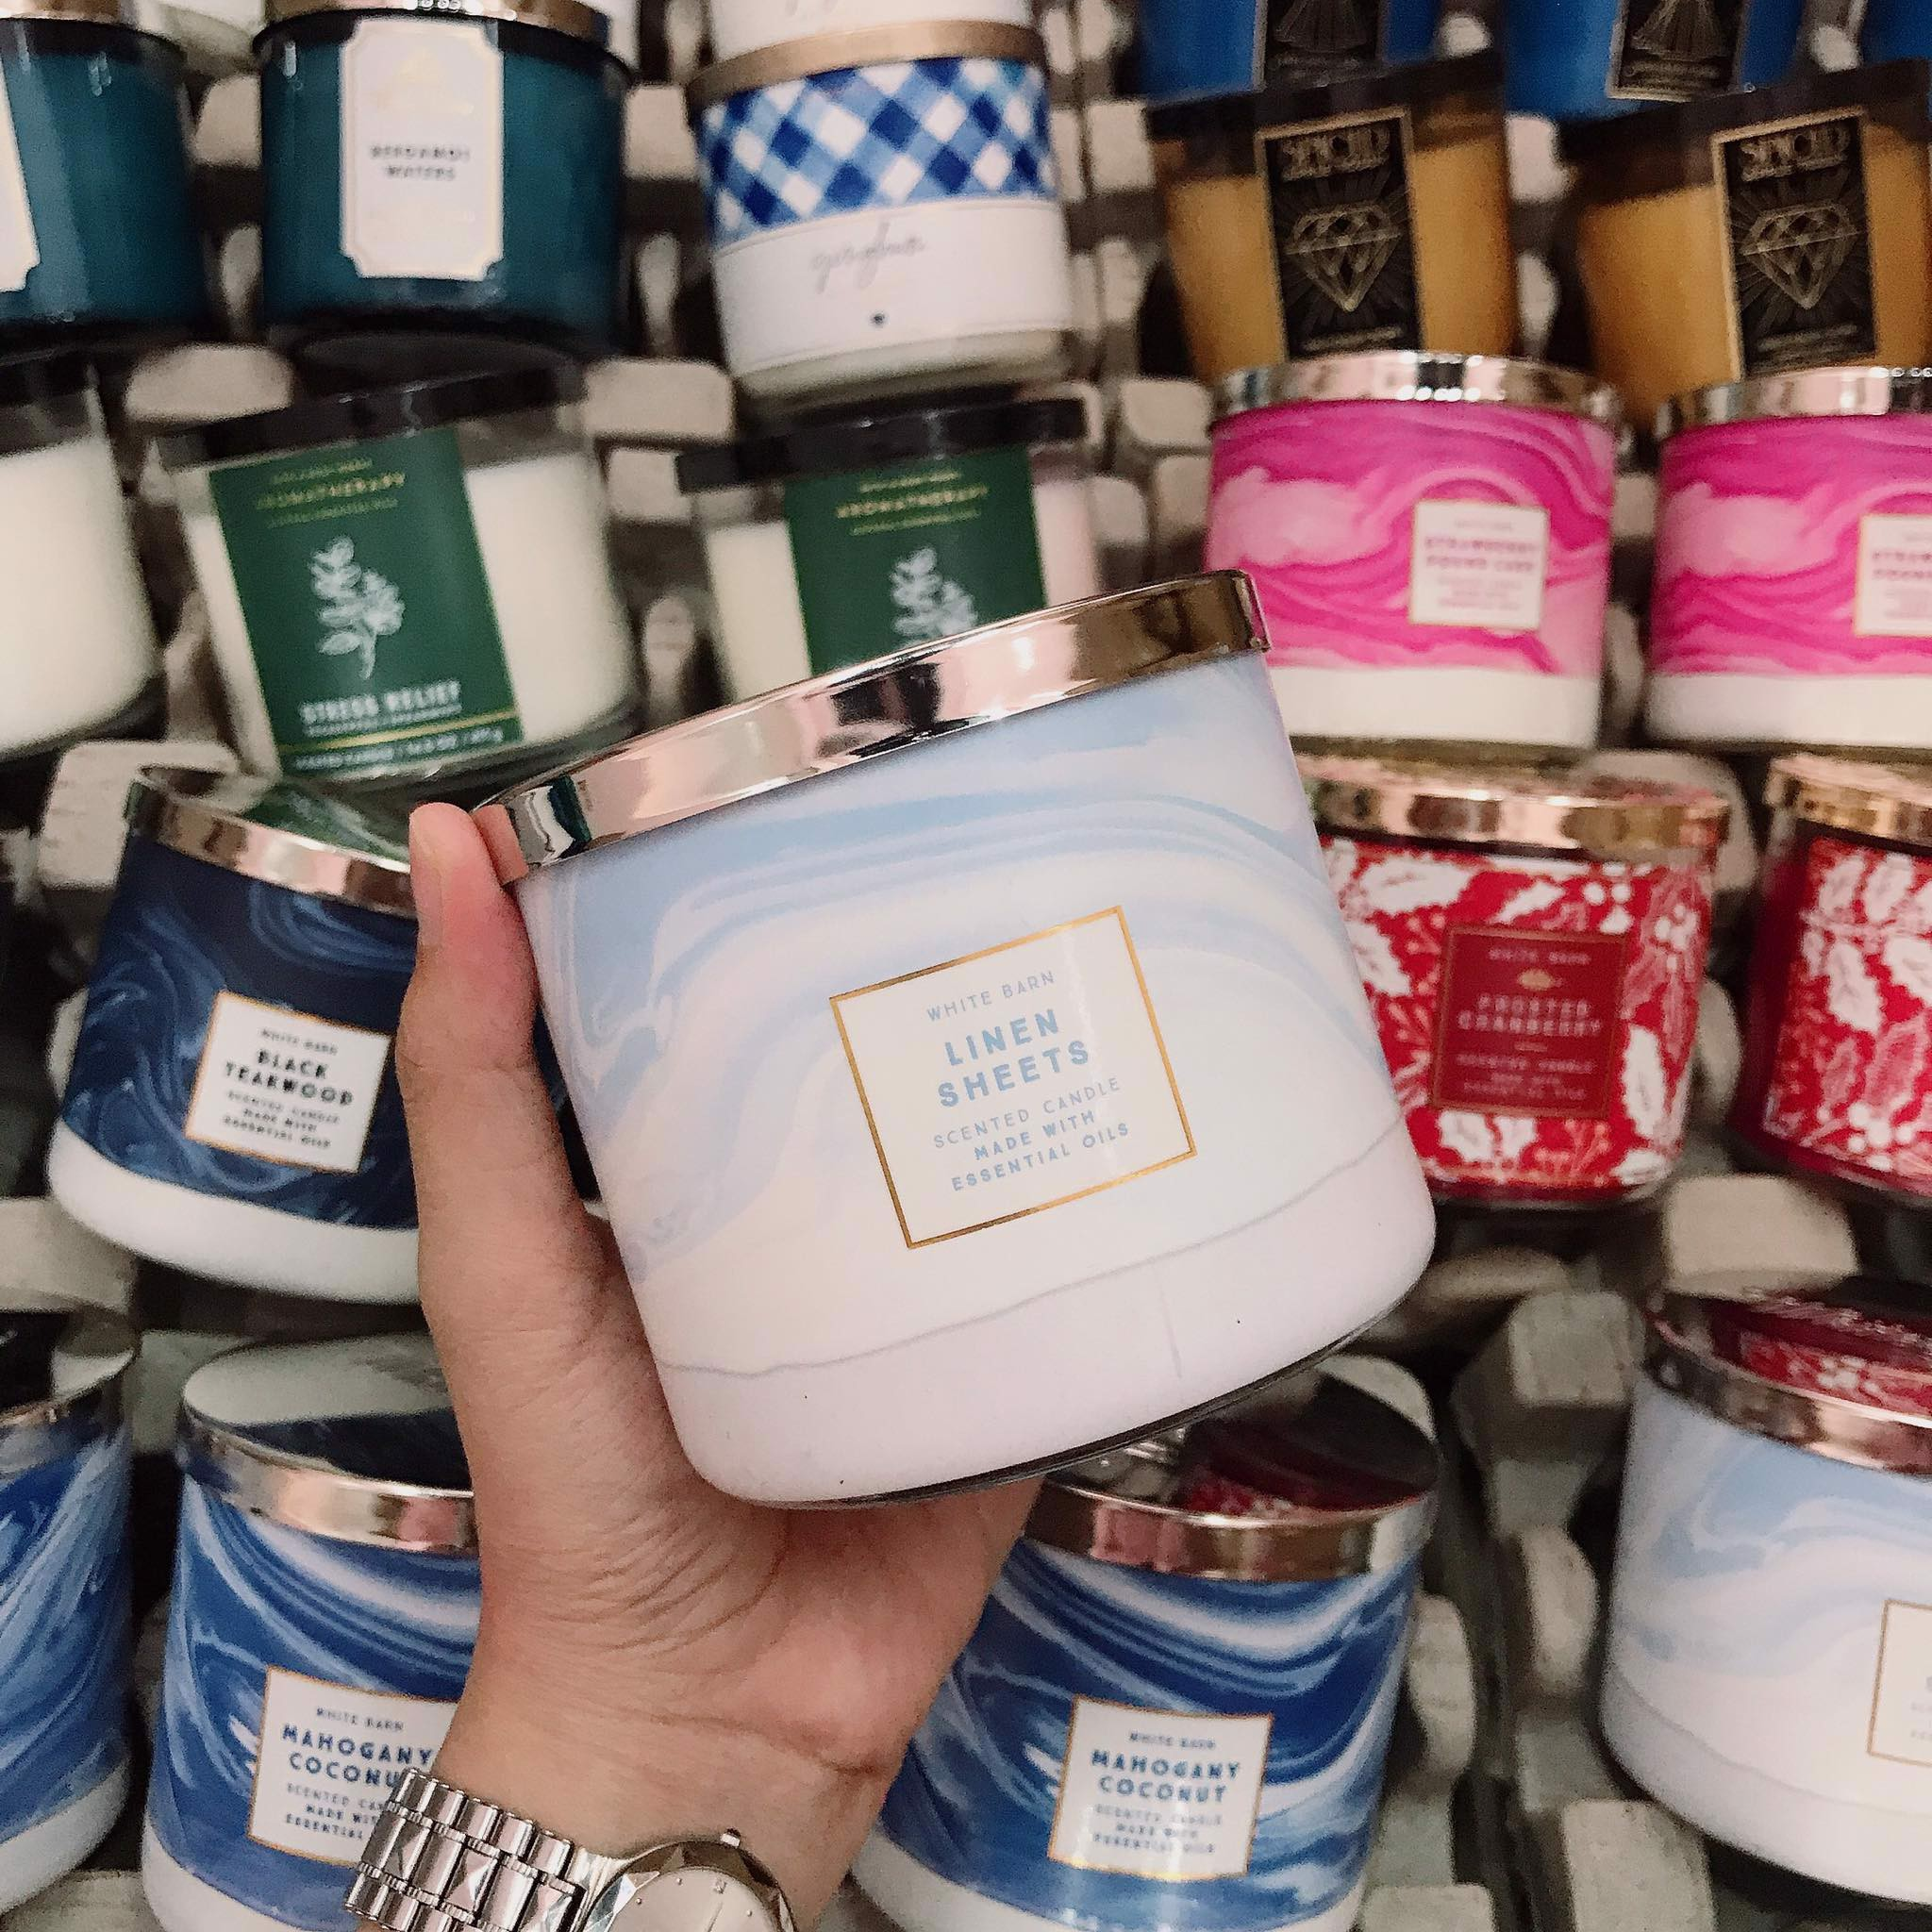 Nến Thơm 3 Bấc Bath & Body Works Linen Sheets Scented Candle